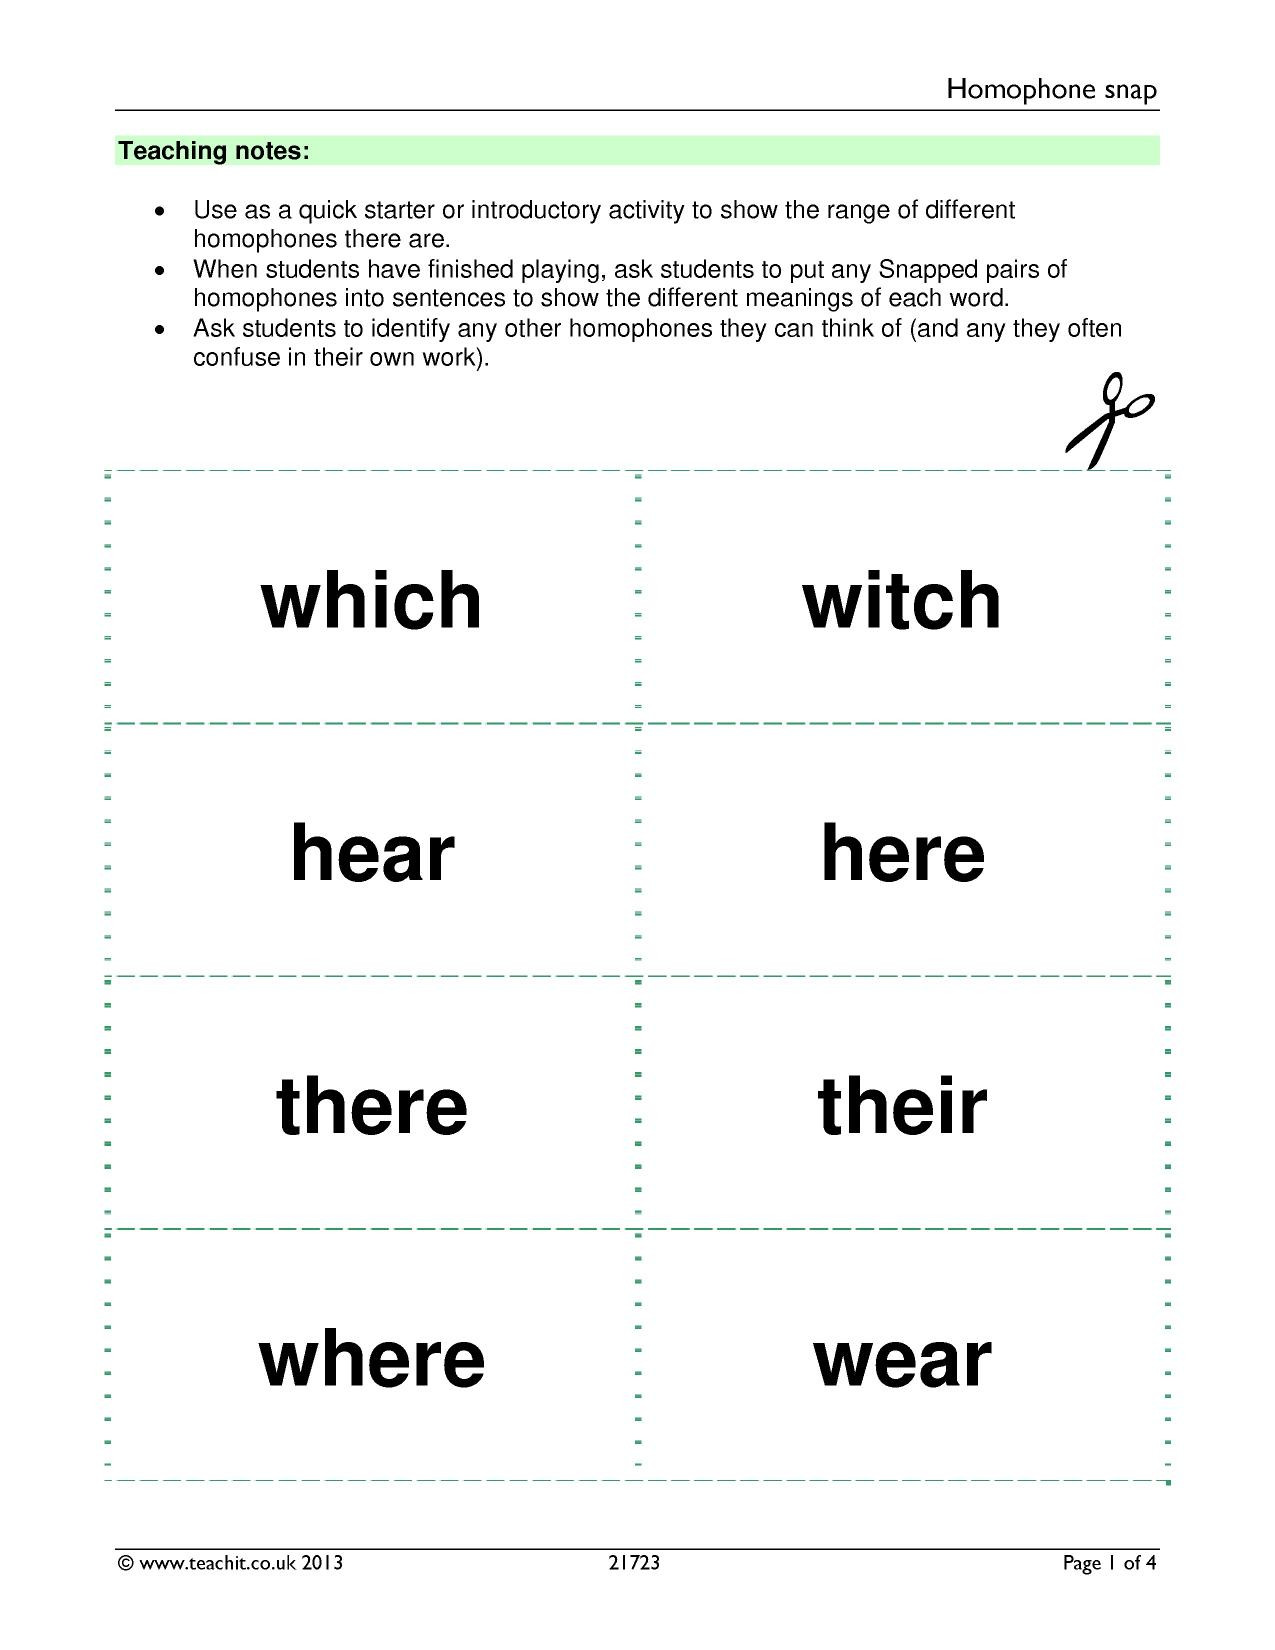 Homonym Worksheets High School Free Printable Homophone Worksheet